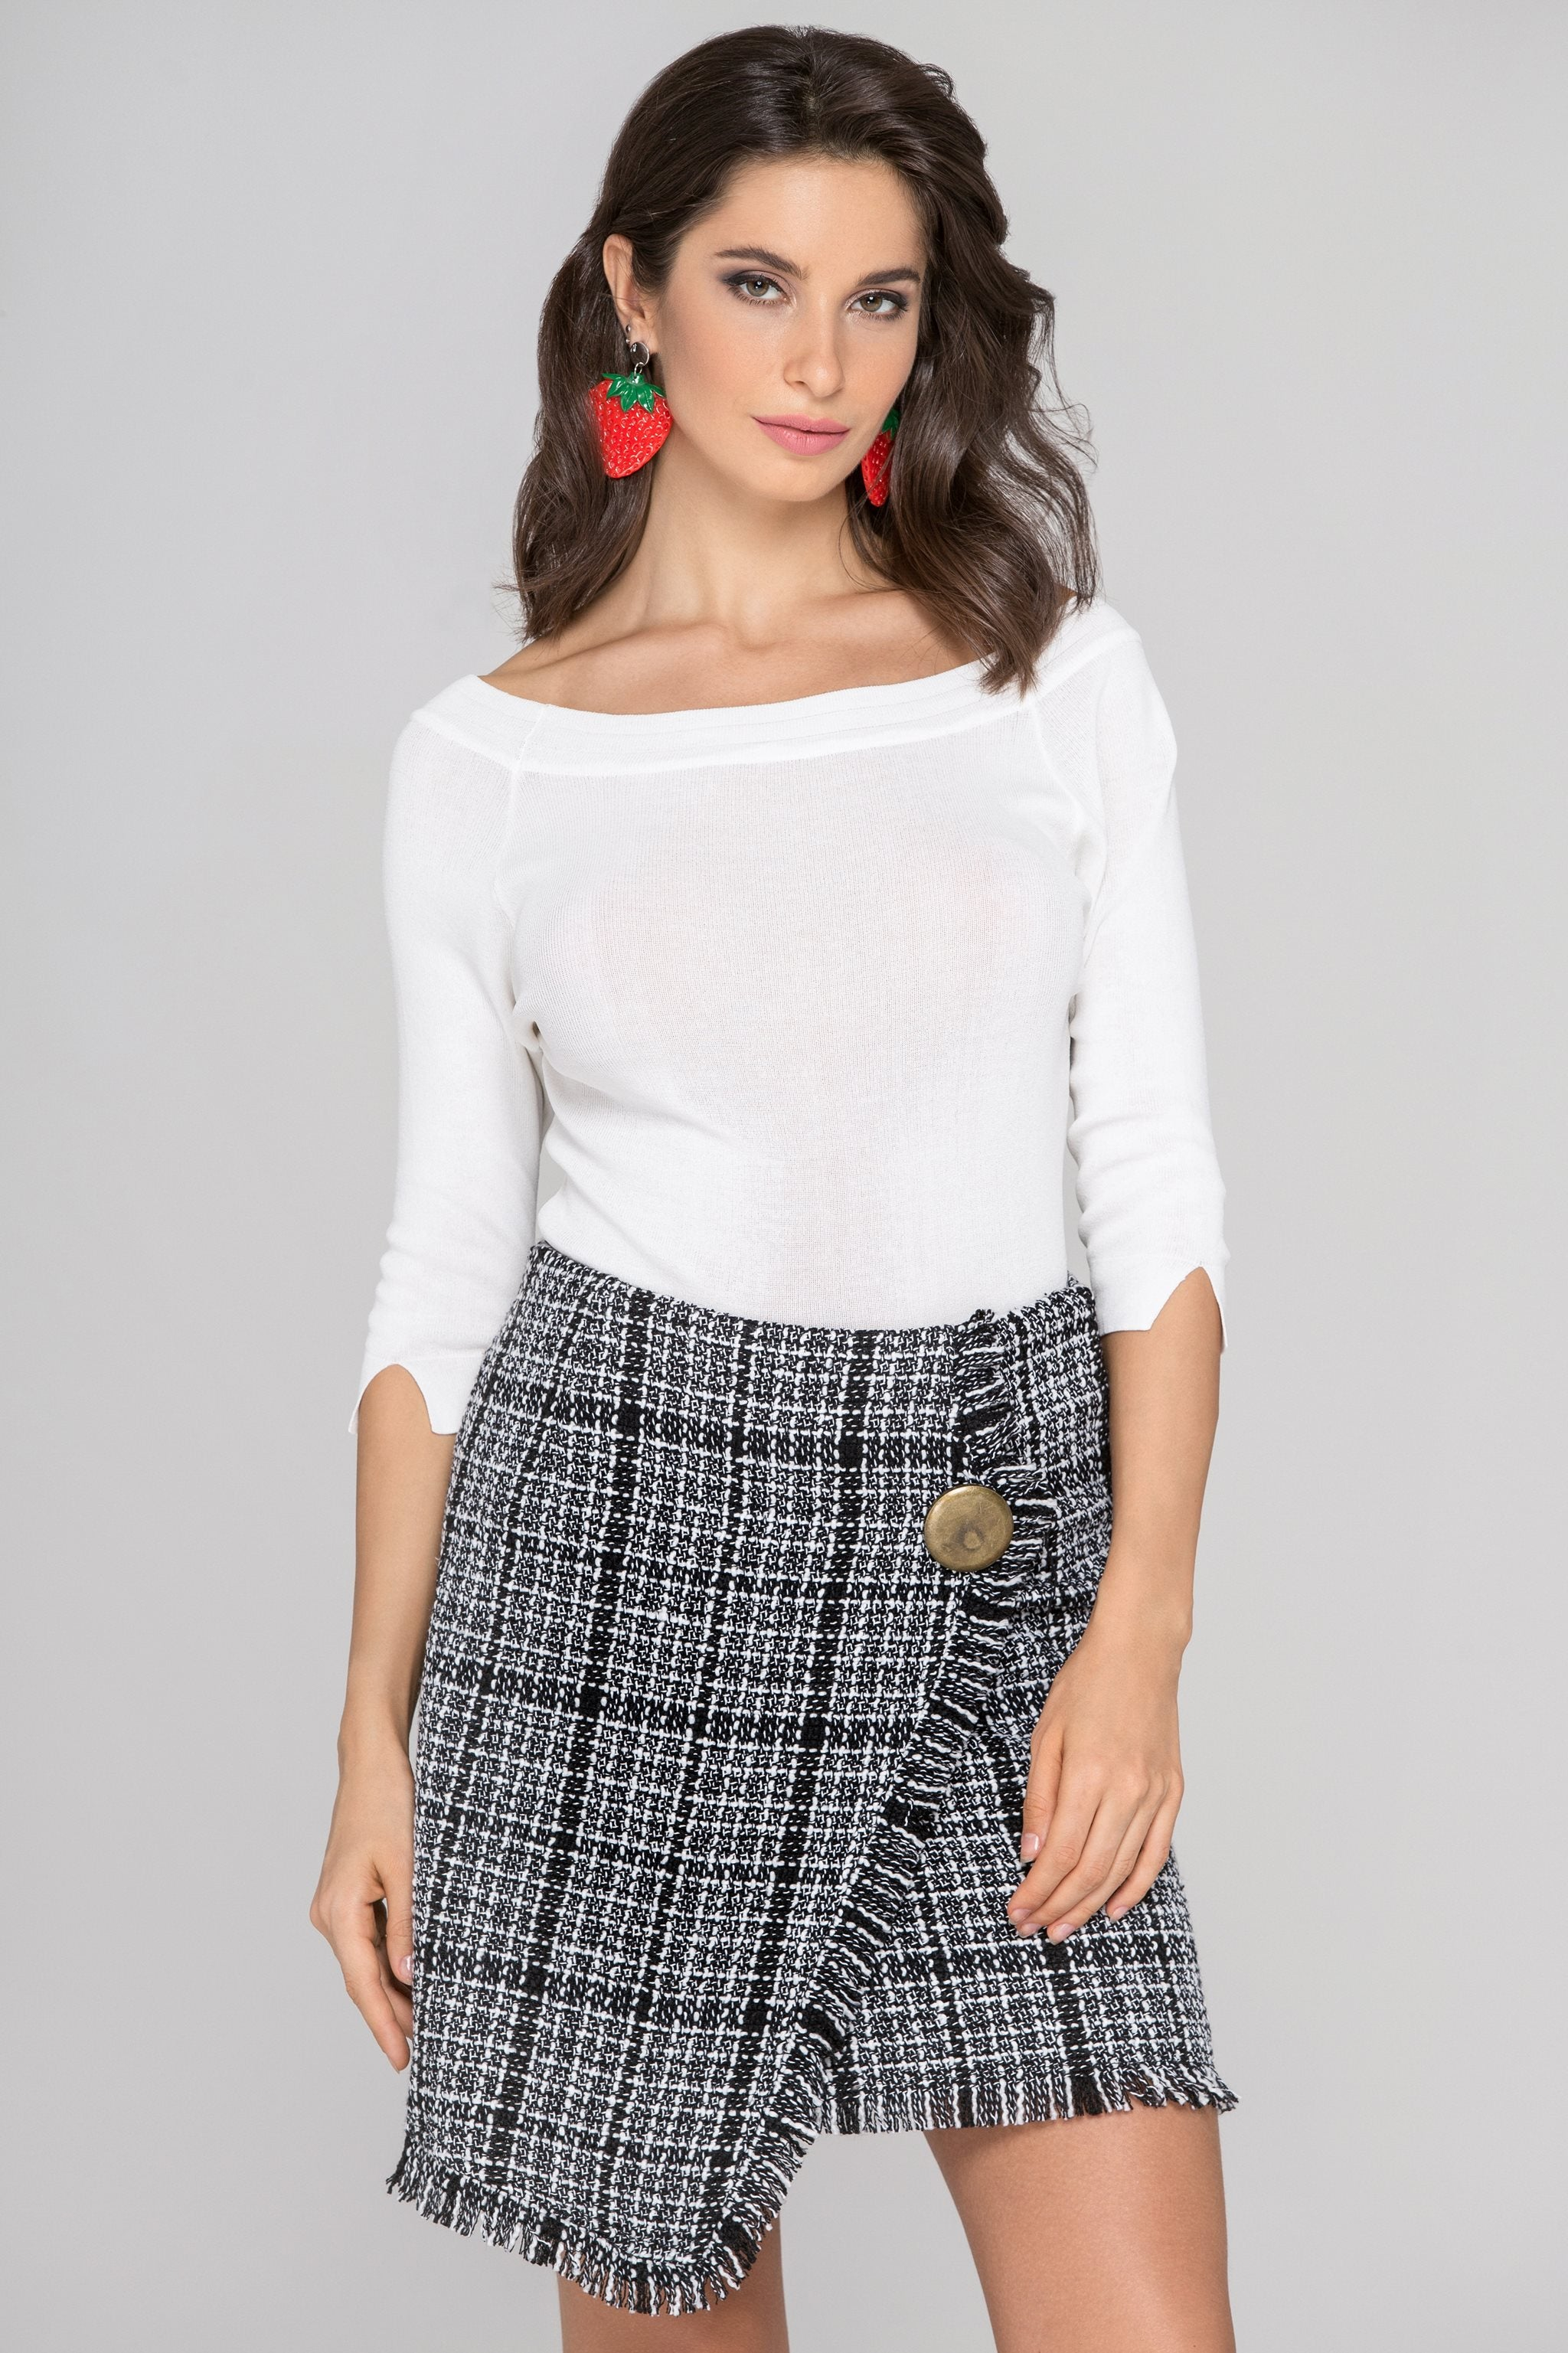 e110ee6b2b Black and White Tweed Skirt and White Top Dress Set – OwnTheLooks